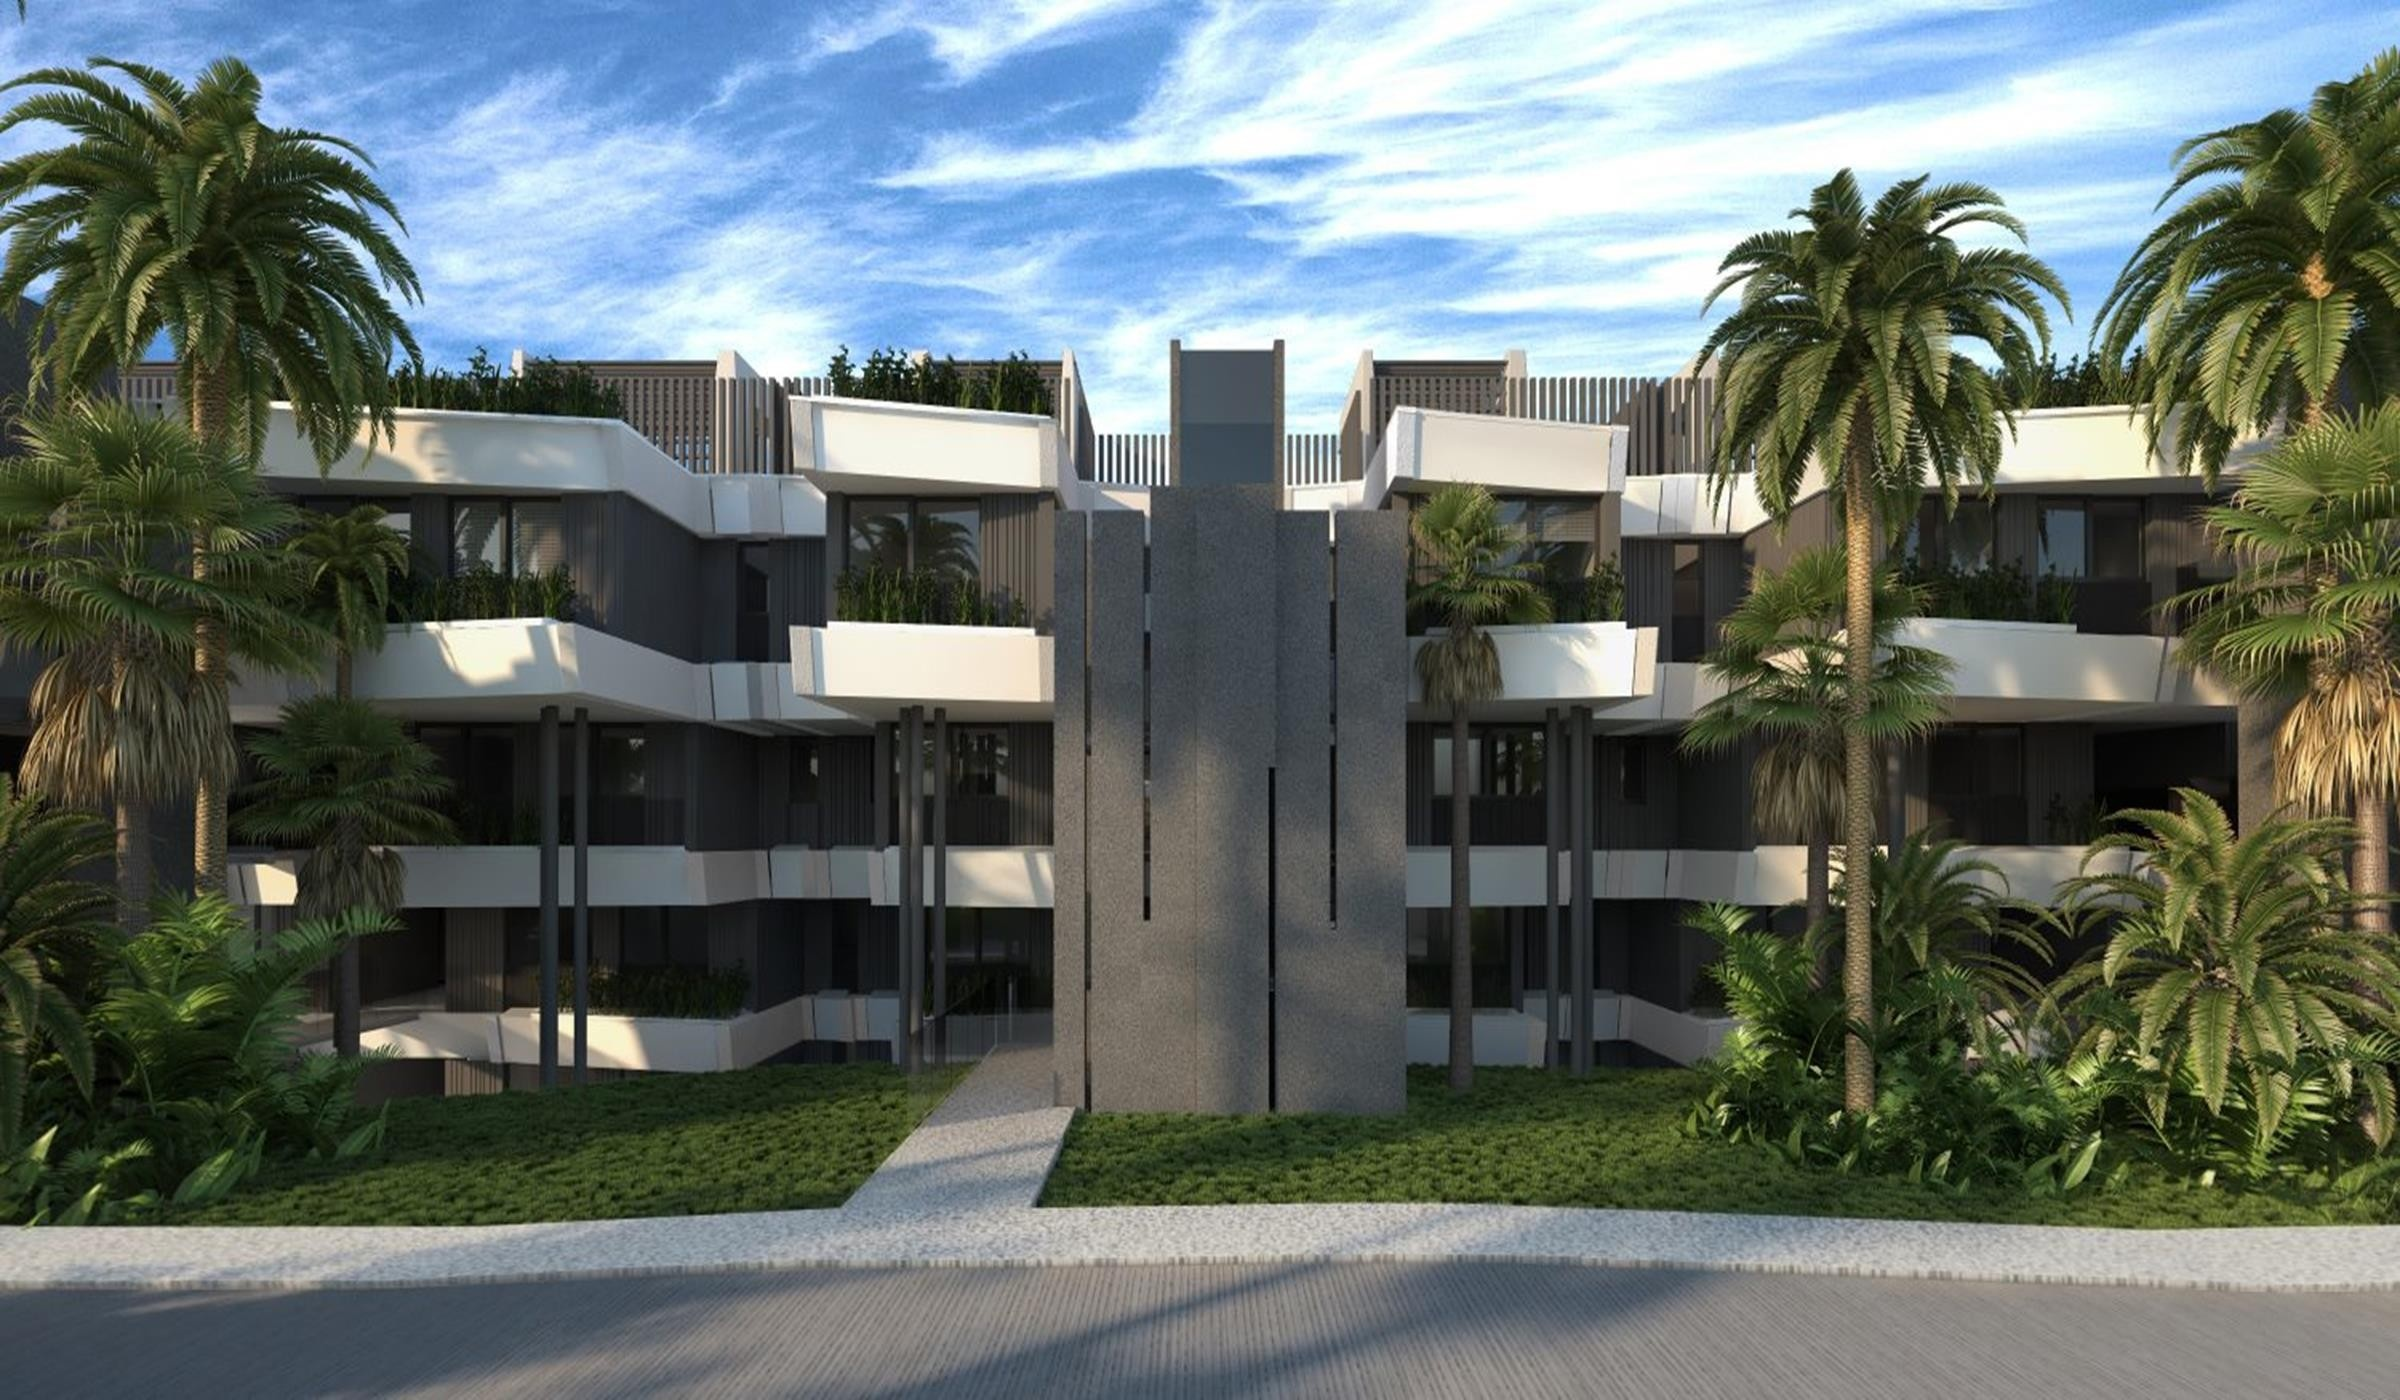 New housing complex between Marbella and Estepona.